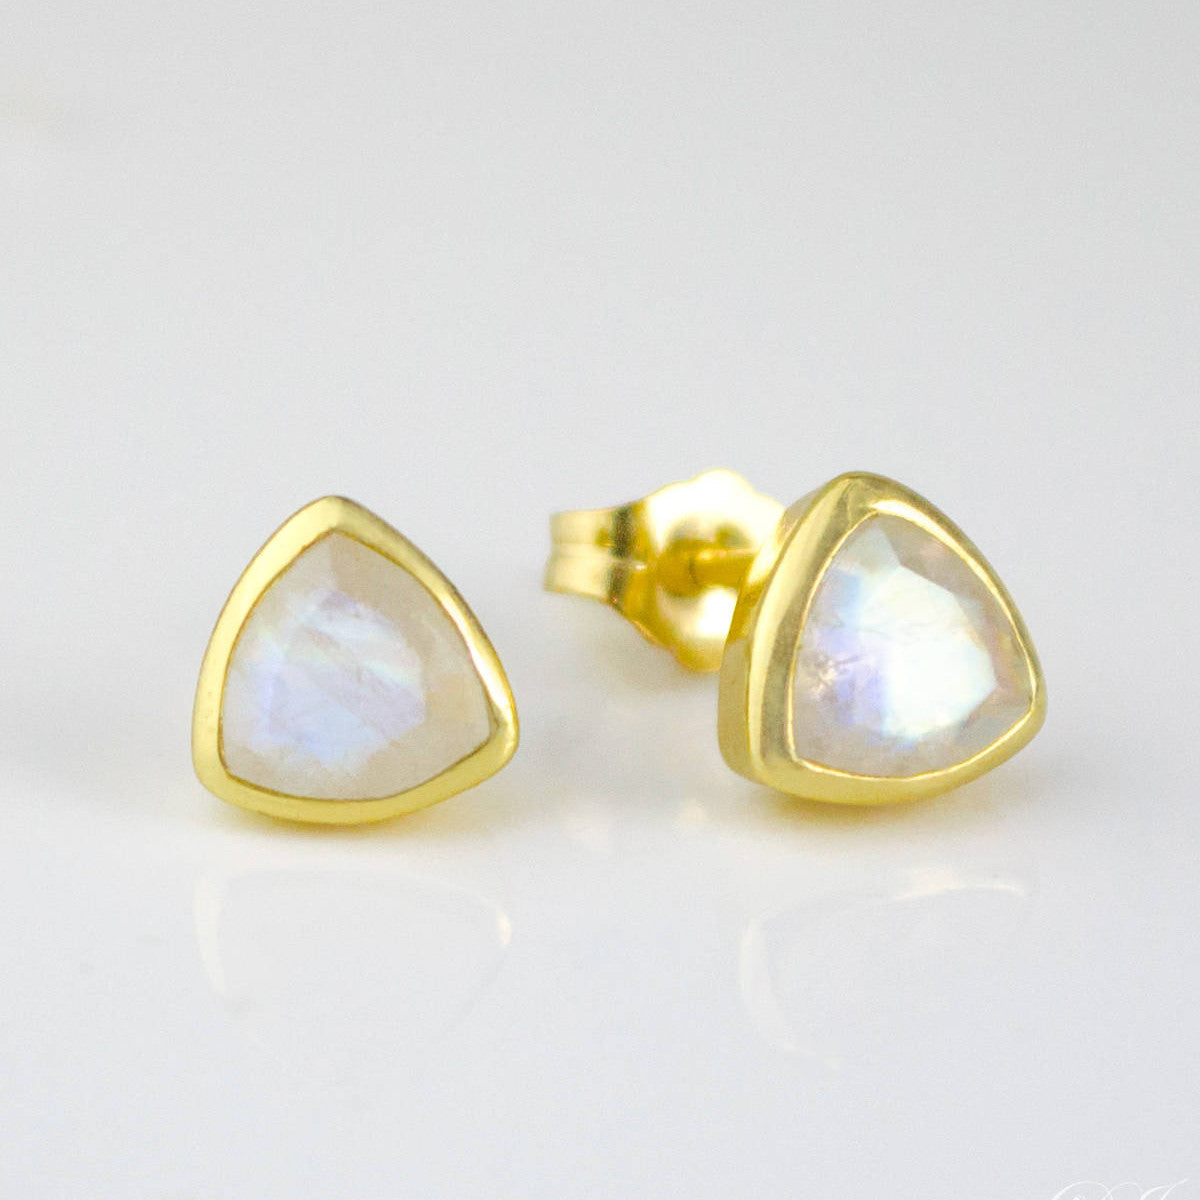 dot everyday stud earrings gold earings earring hugerect filled product tiny simple